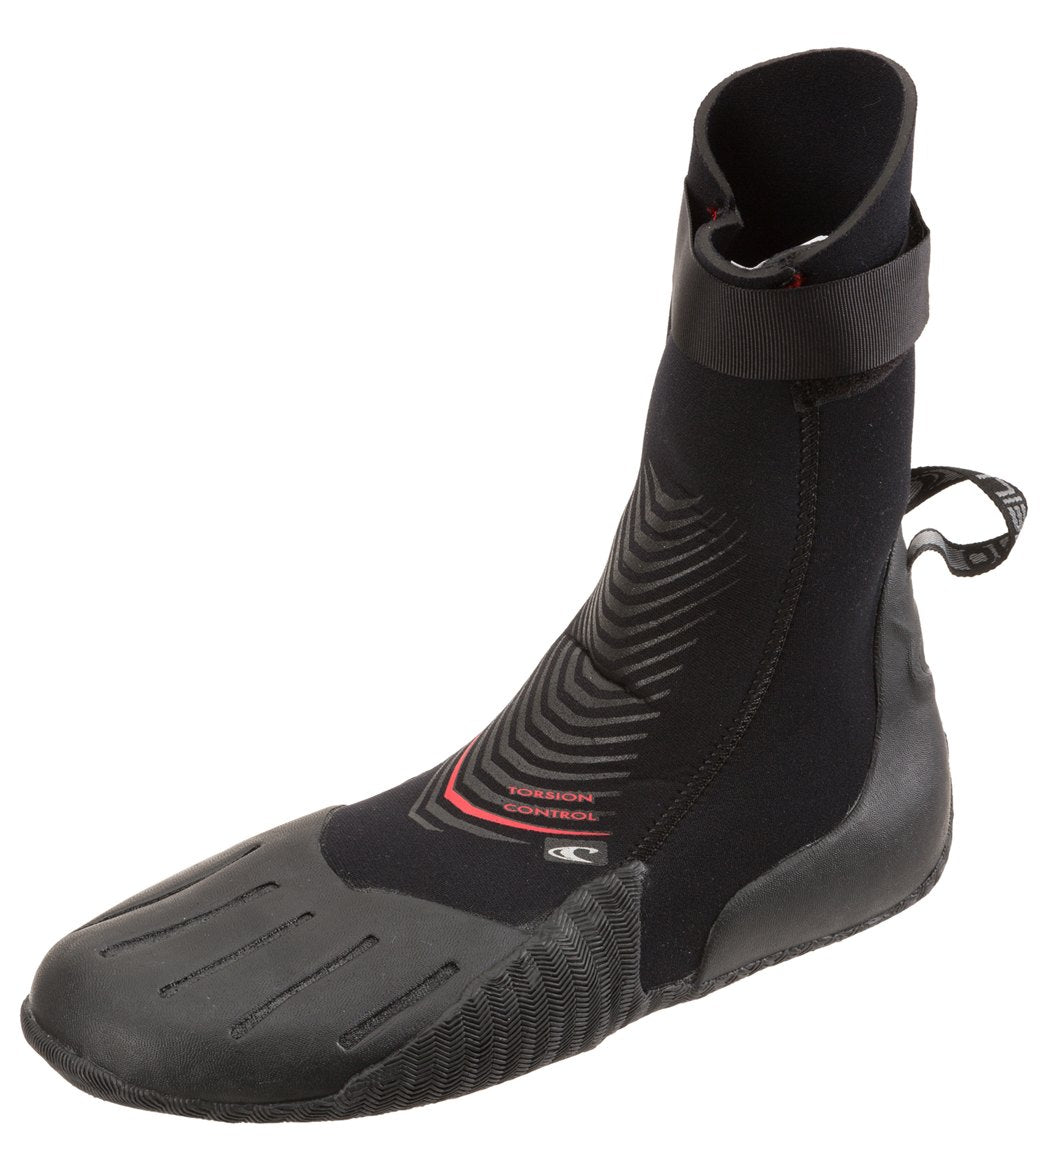 O'Neill Heat 3mm Round Toe Boot